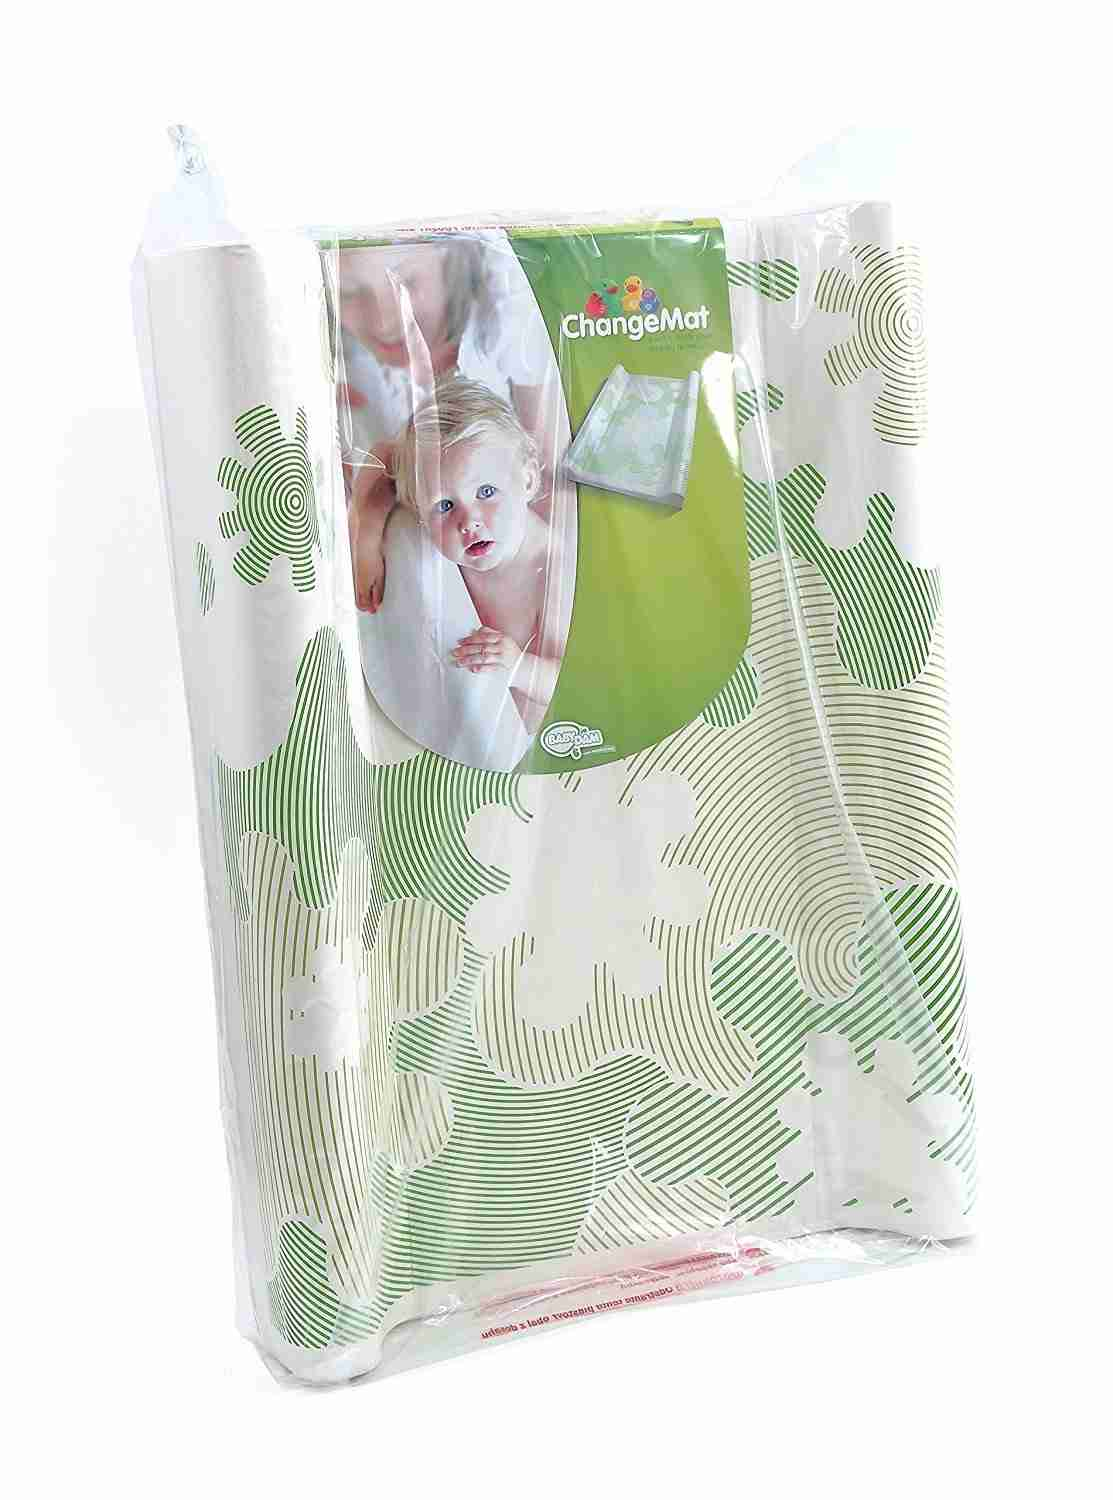 BabyDam changing mat is securely packaged and sealed ensuring it is sent germ free.